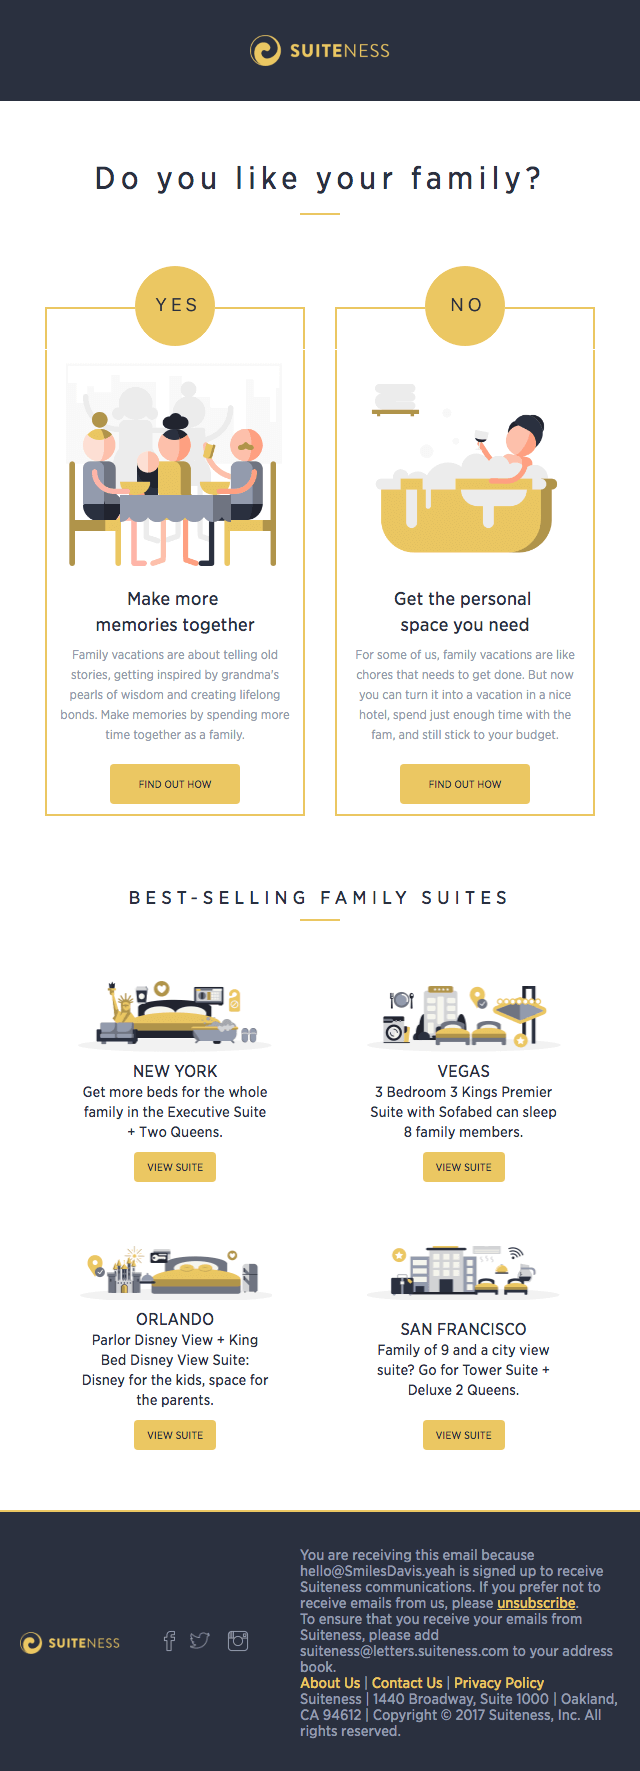 email marketing inspiration Suiteness